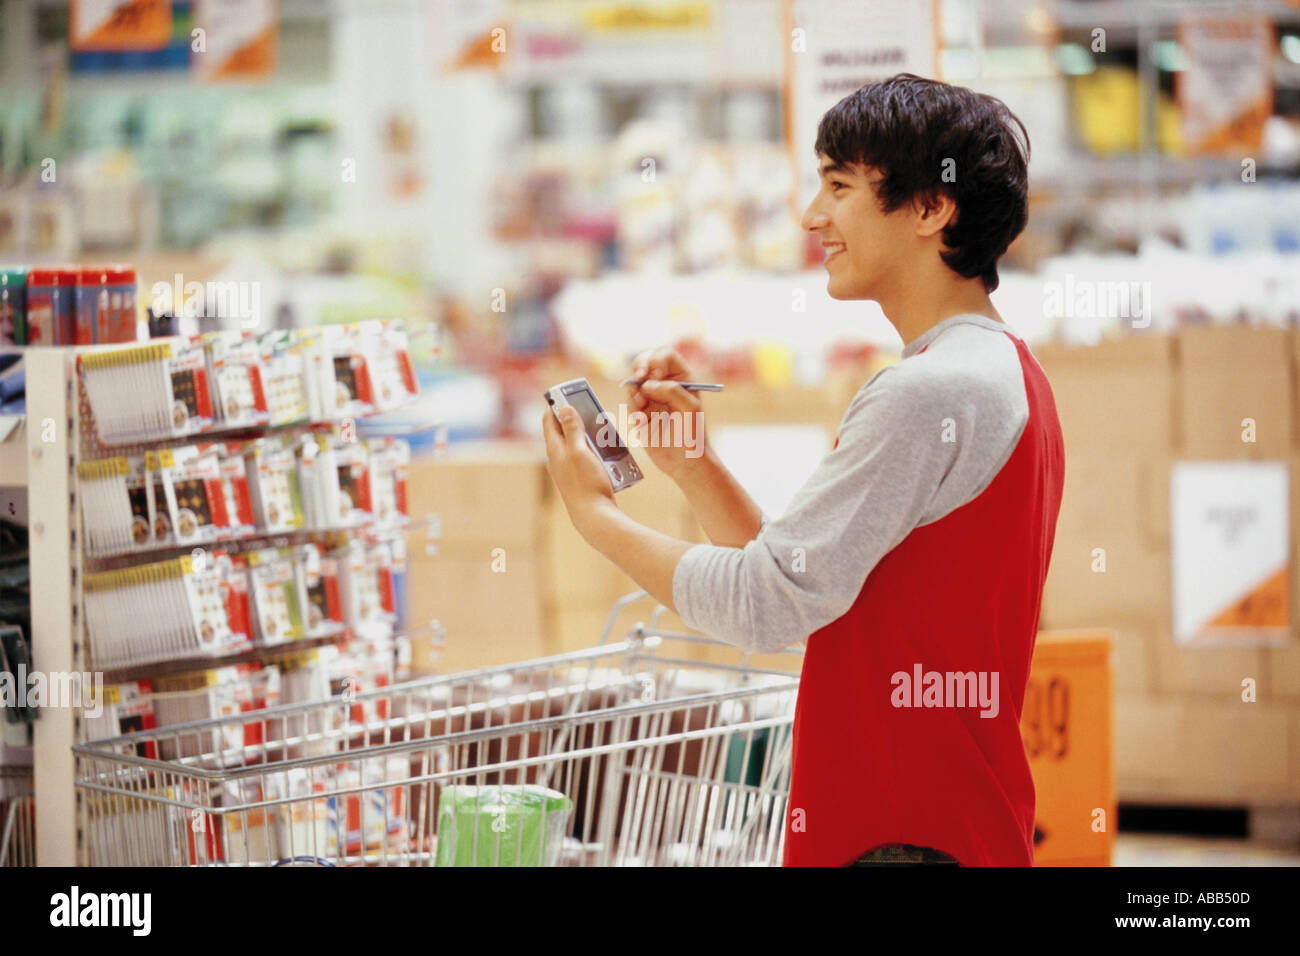 Man in using a handheld computer in shop - Stock Image